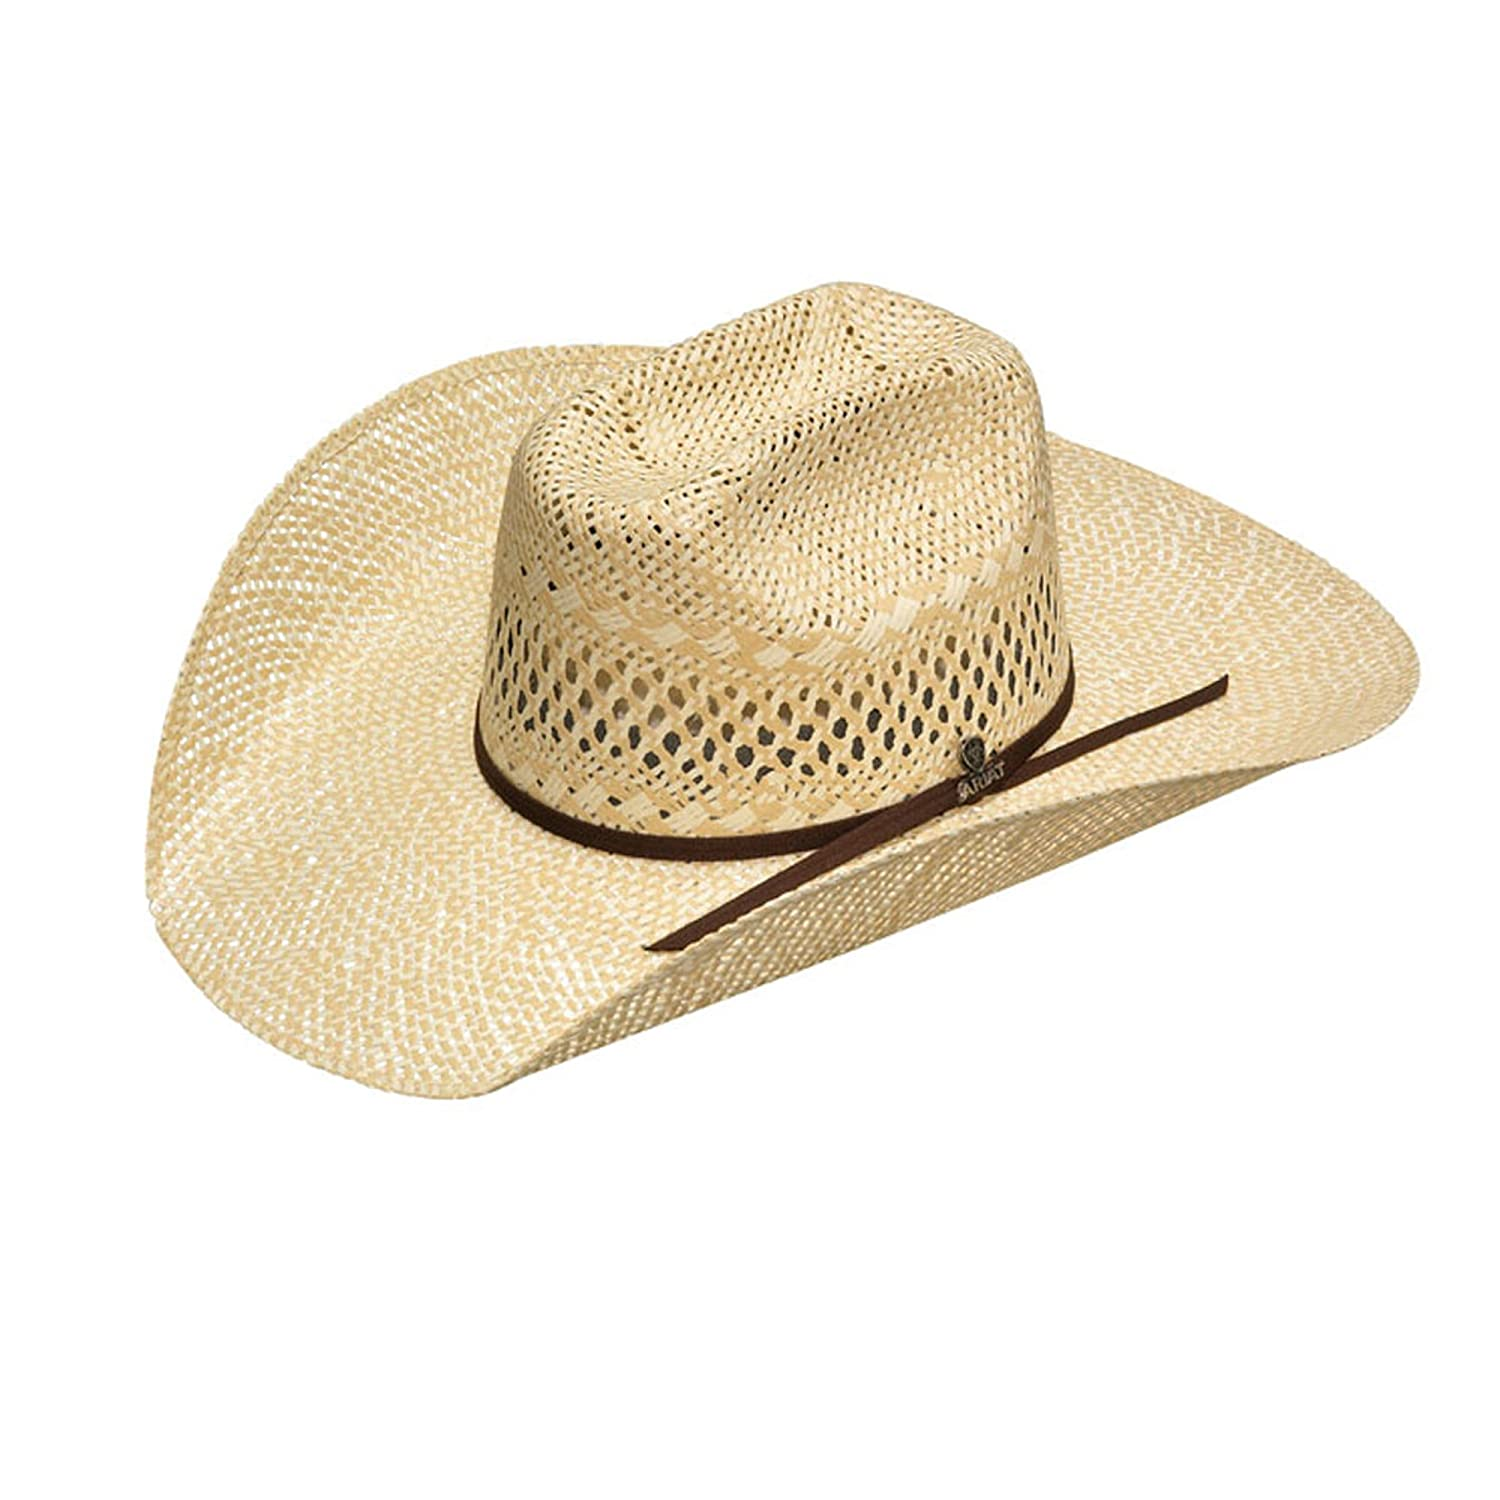 Ariat Men s Twisted Weave Hat at Amazon Men s Clothing store  25fd4abb8e7